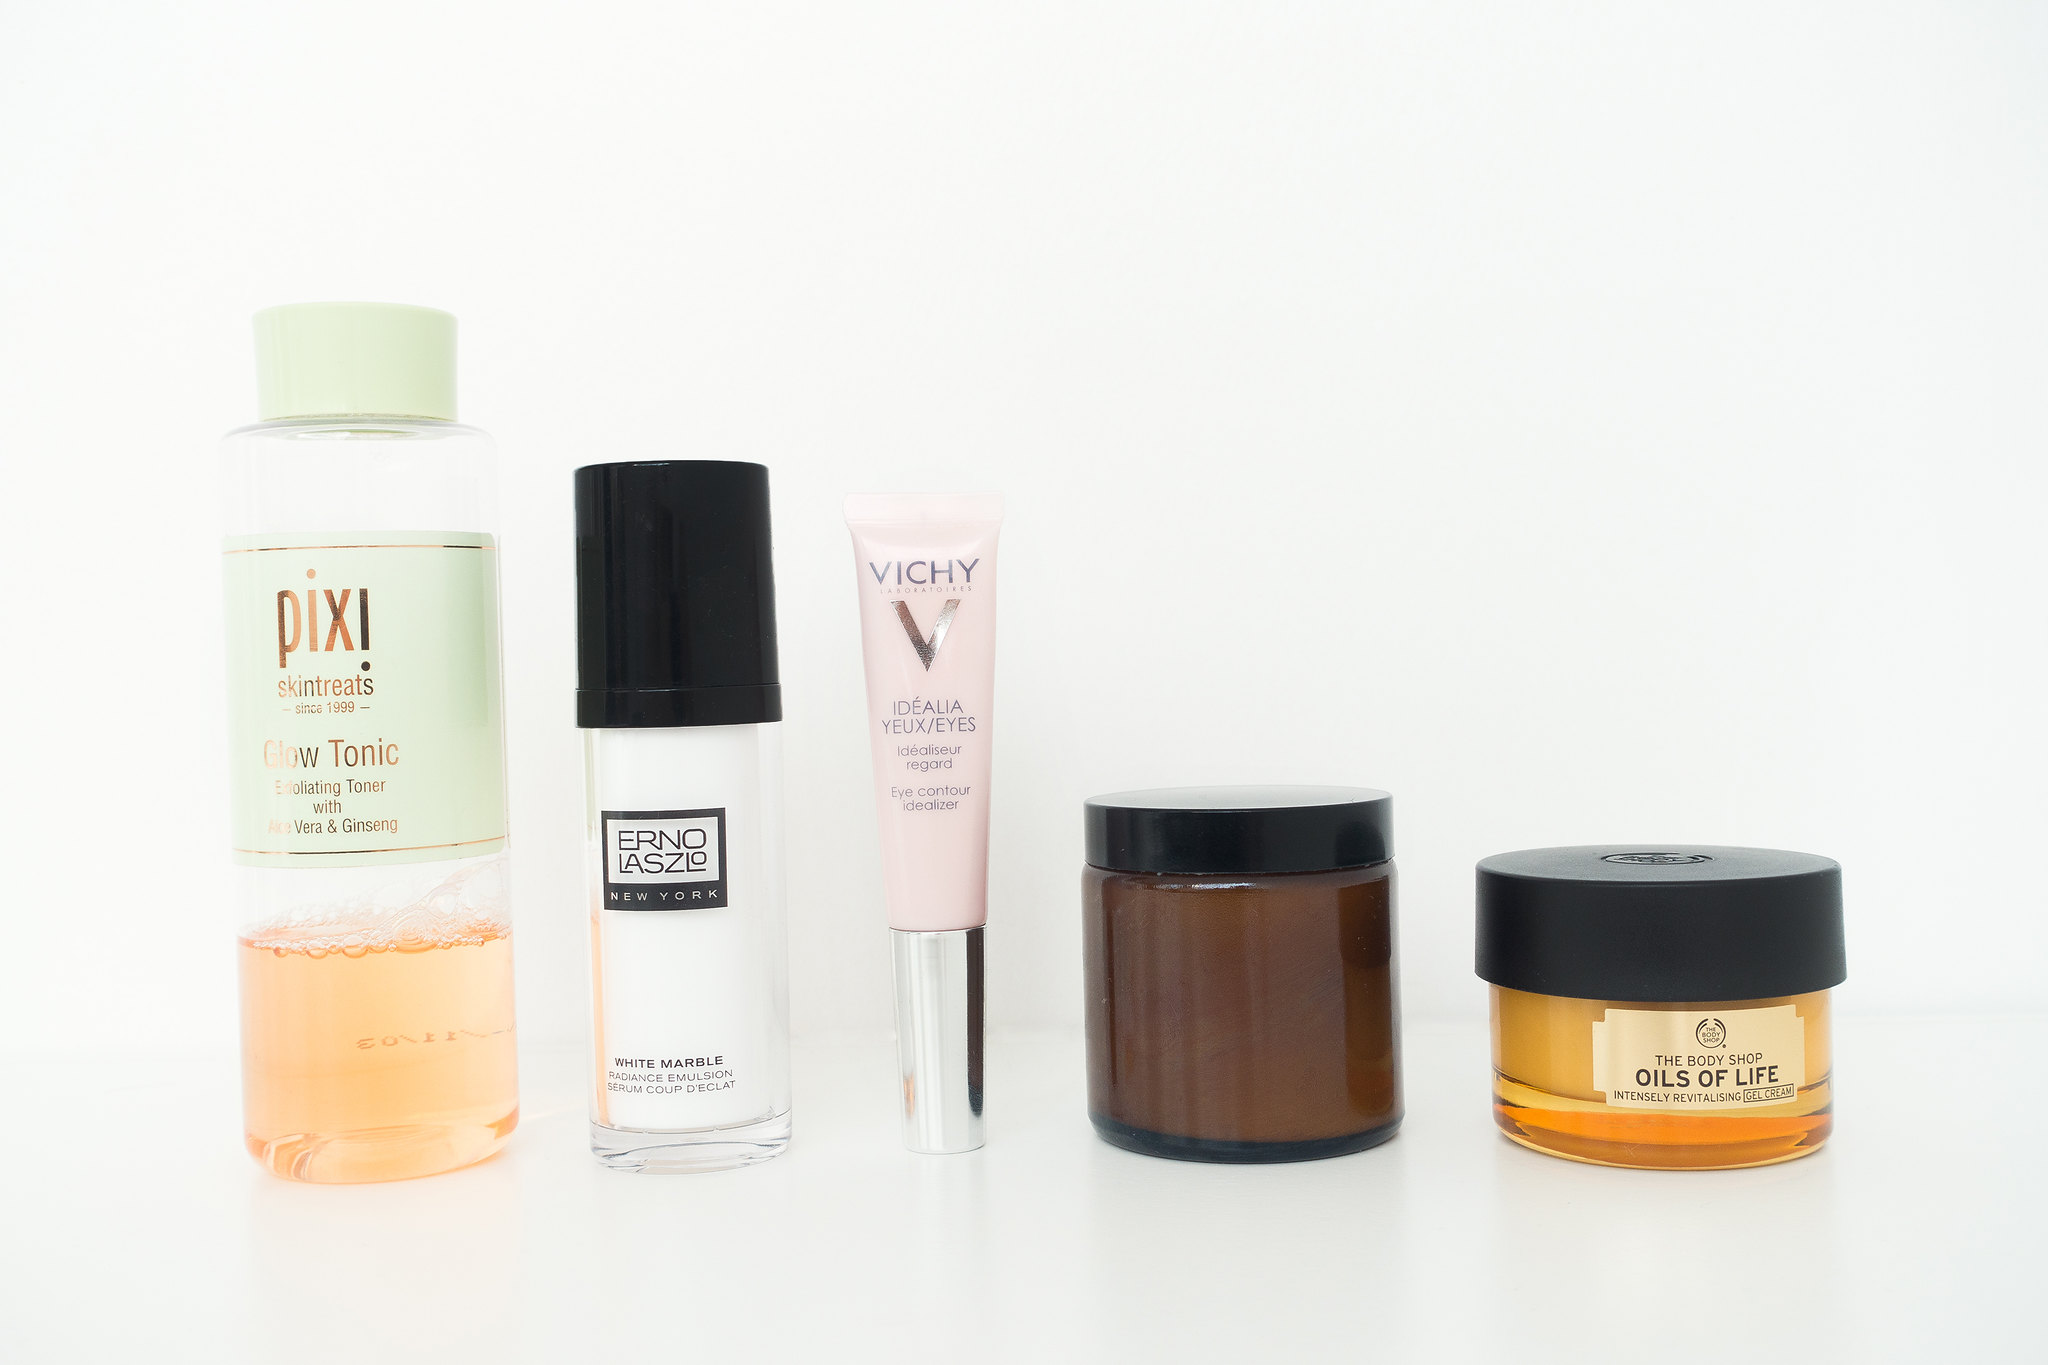 The Best Products to Nourish Winter Skin